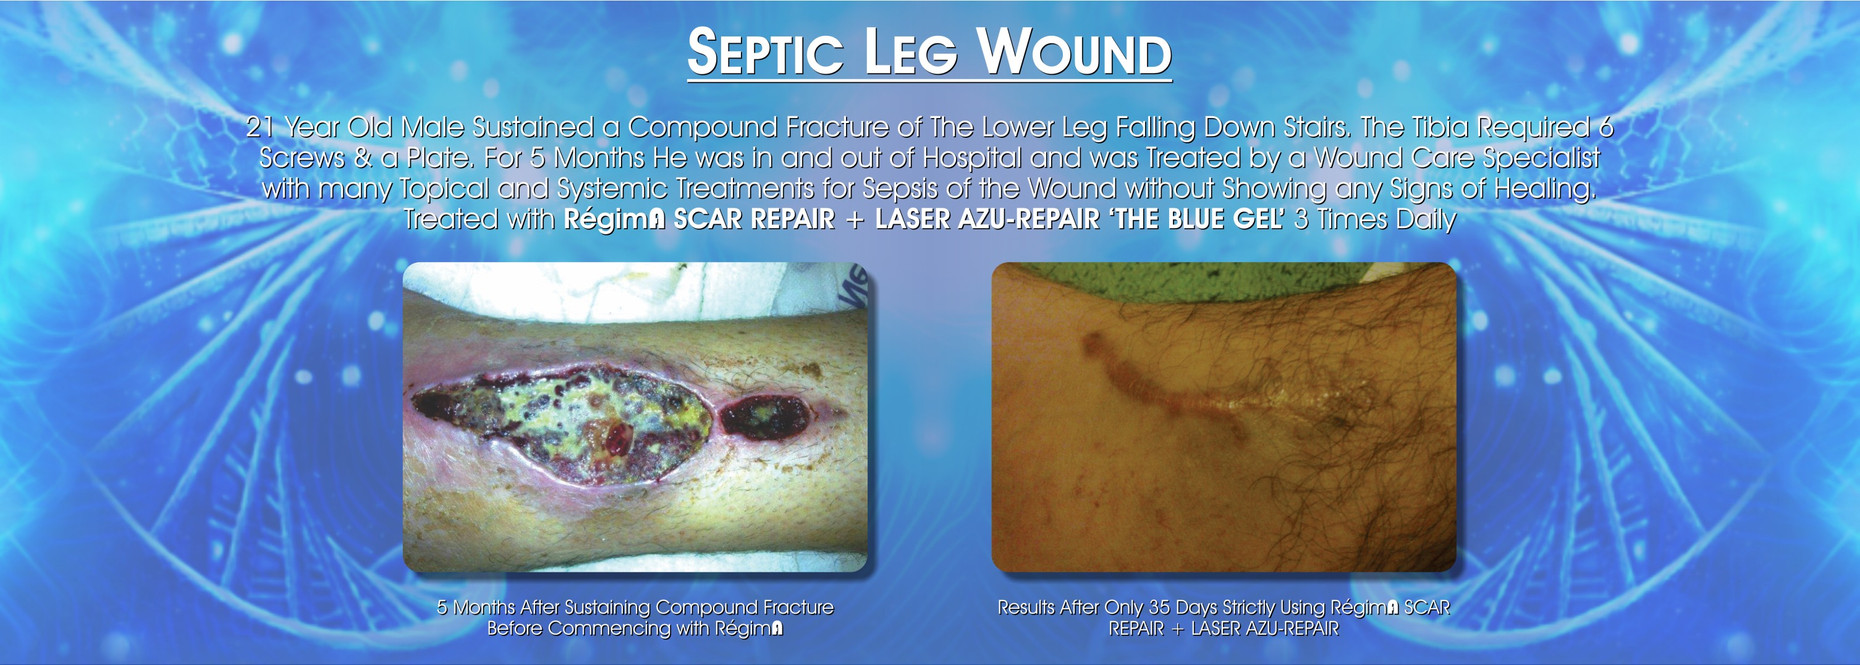 Septic leg wound